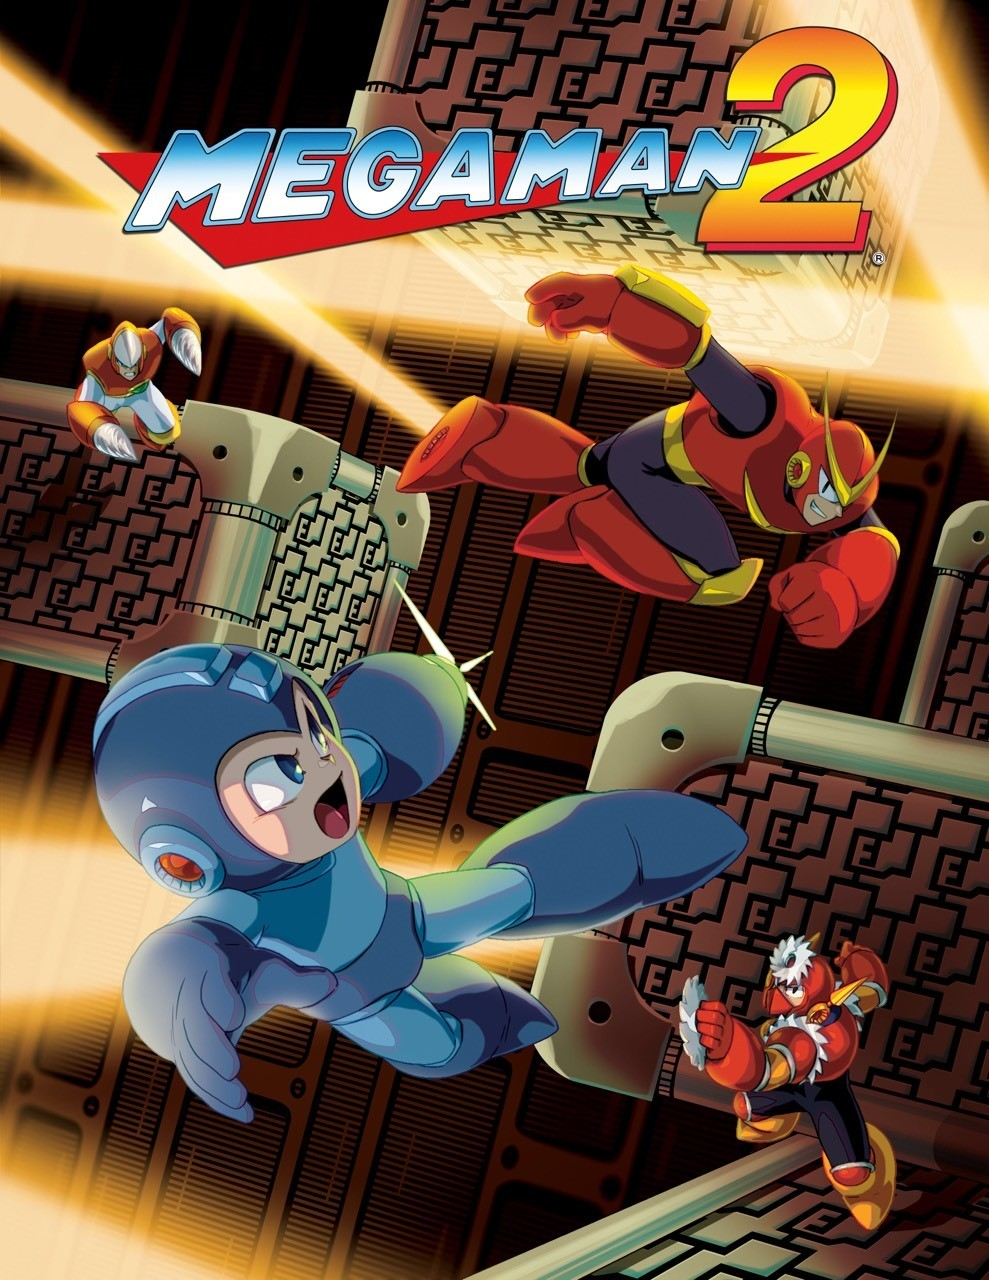 Mega Man II - Official art from the Mega Man Legacy Collection game.